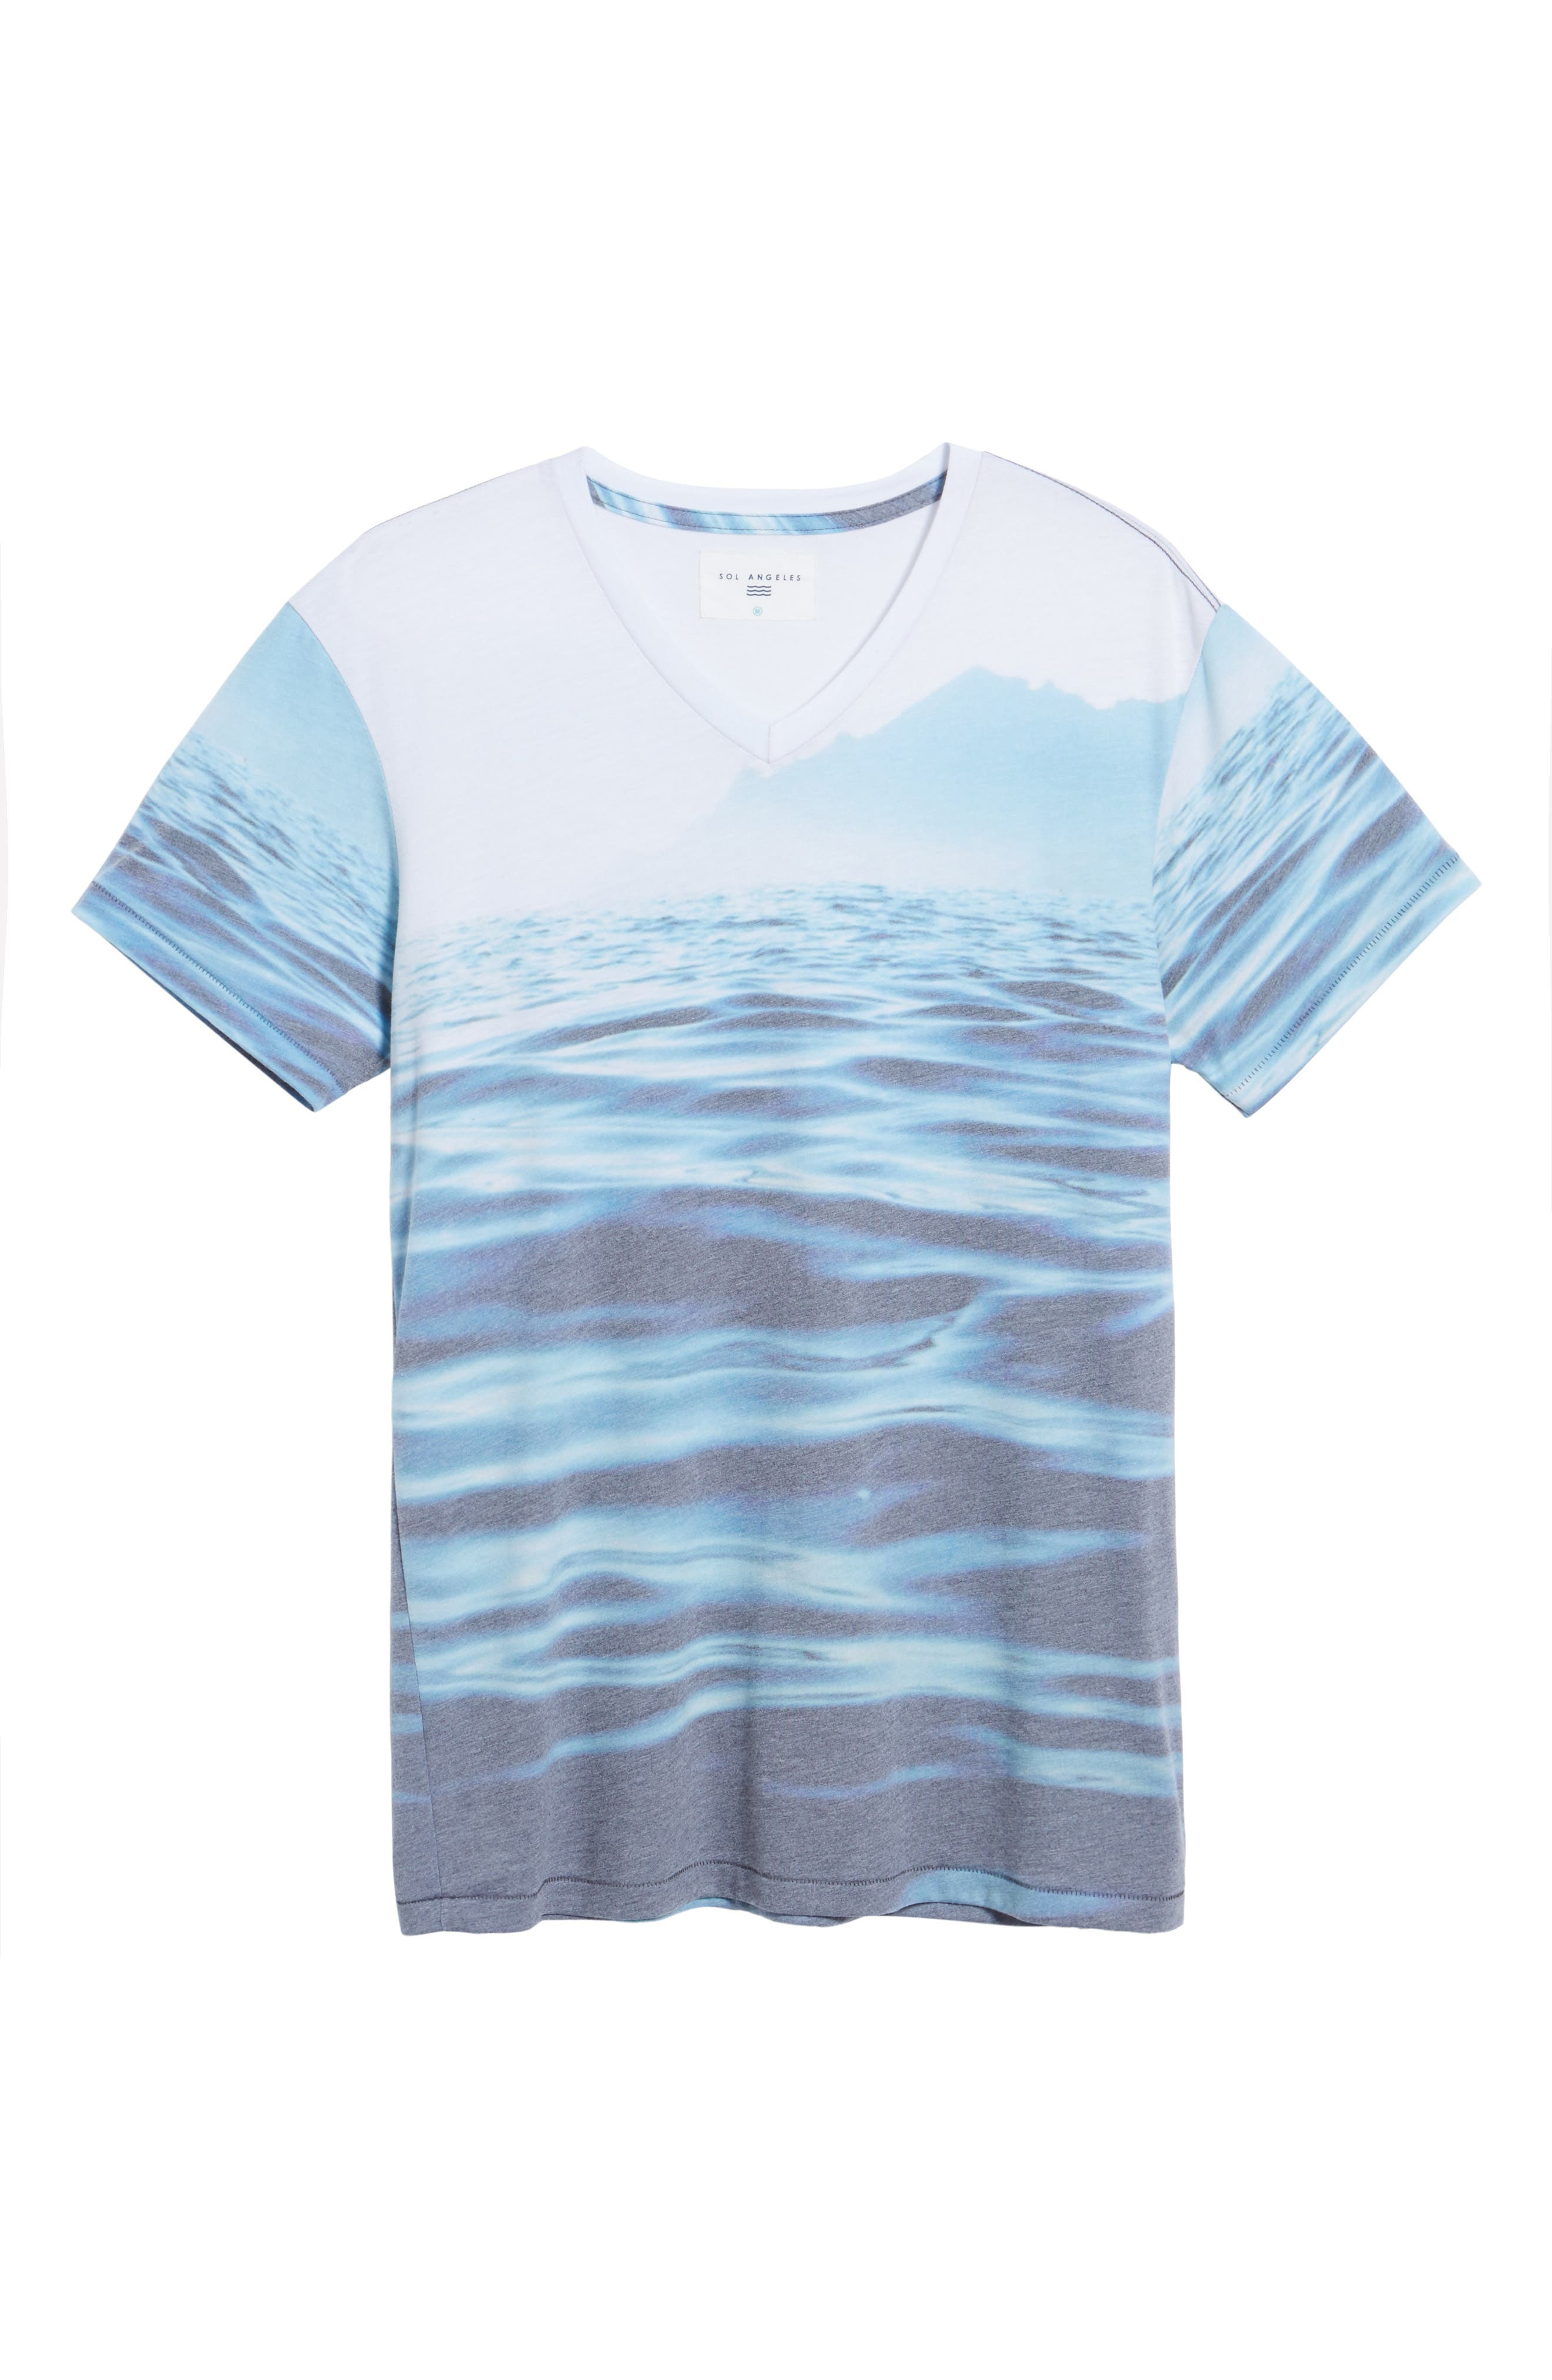 Mirage Waters T-Shirt,                             Alternate thumbnail 6, color,                             460